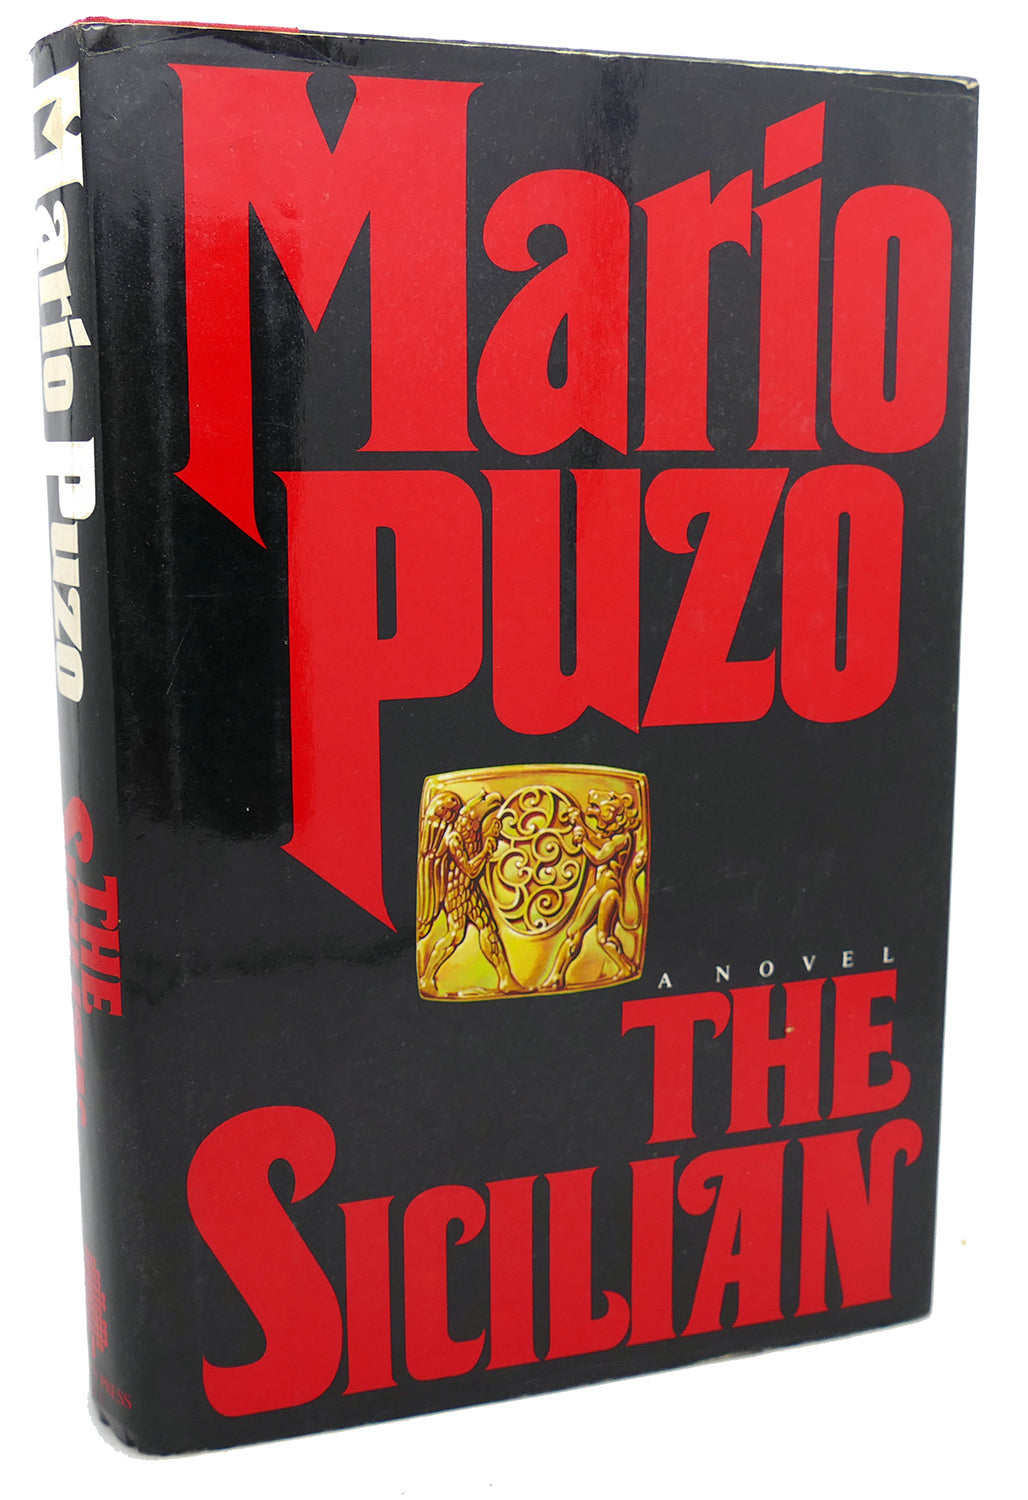 The Sicilian by Mario Puzo; First Edition